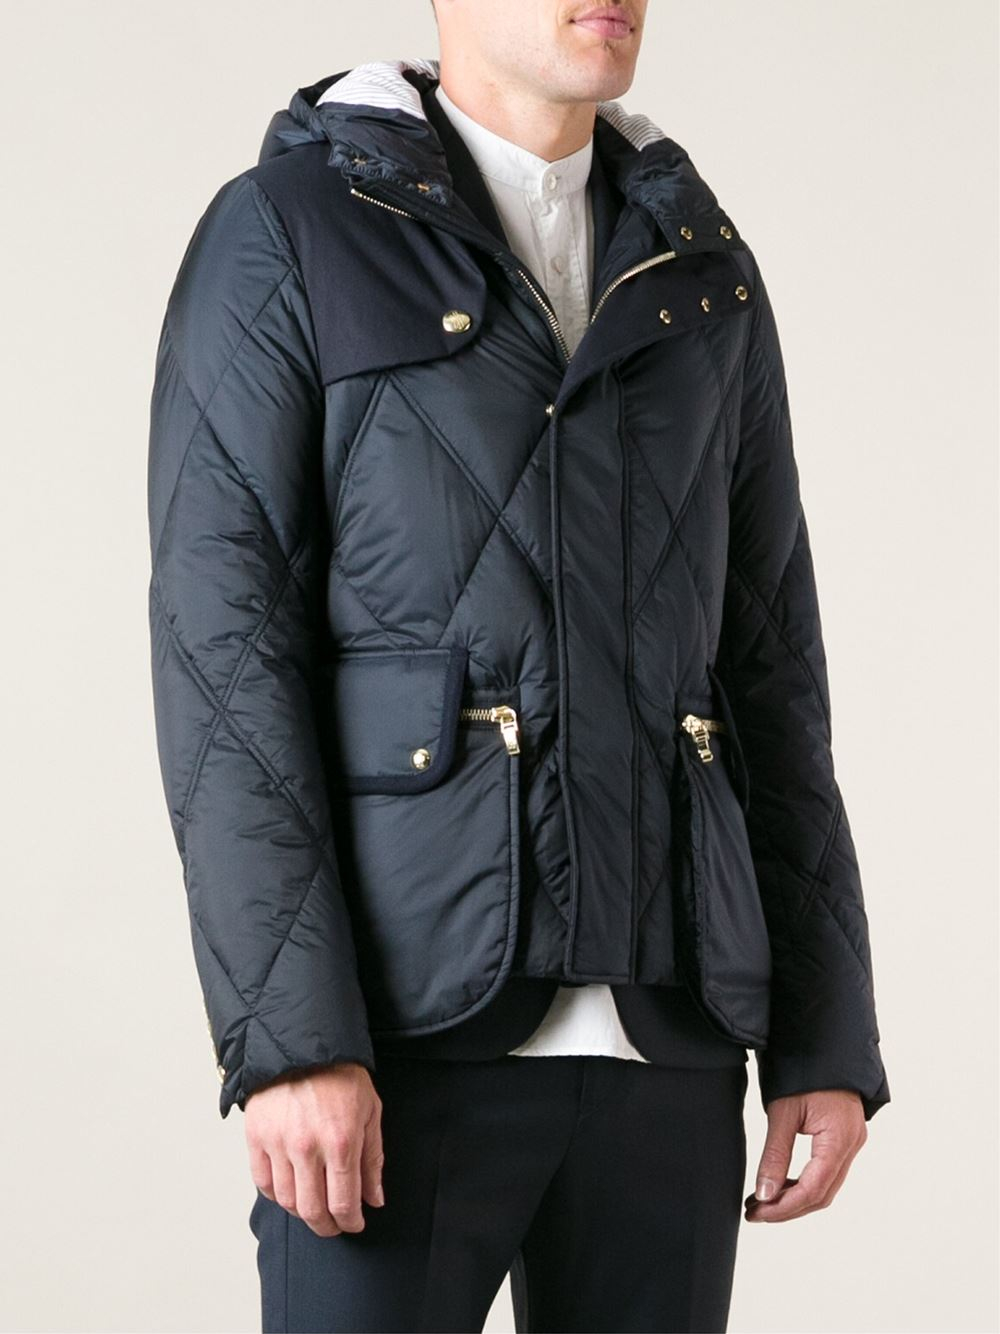 987d15bb6 Lyst - Moncler Gamme Bleu Quilted Feather Down Jacket in Blue for Men